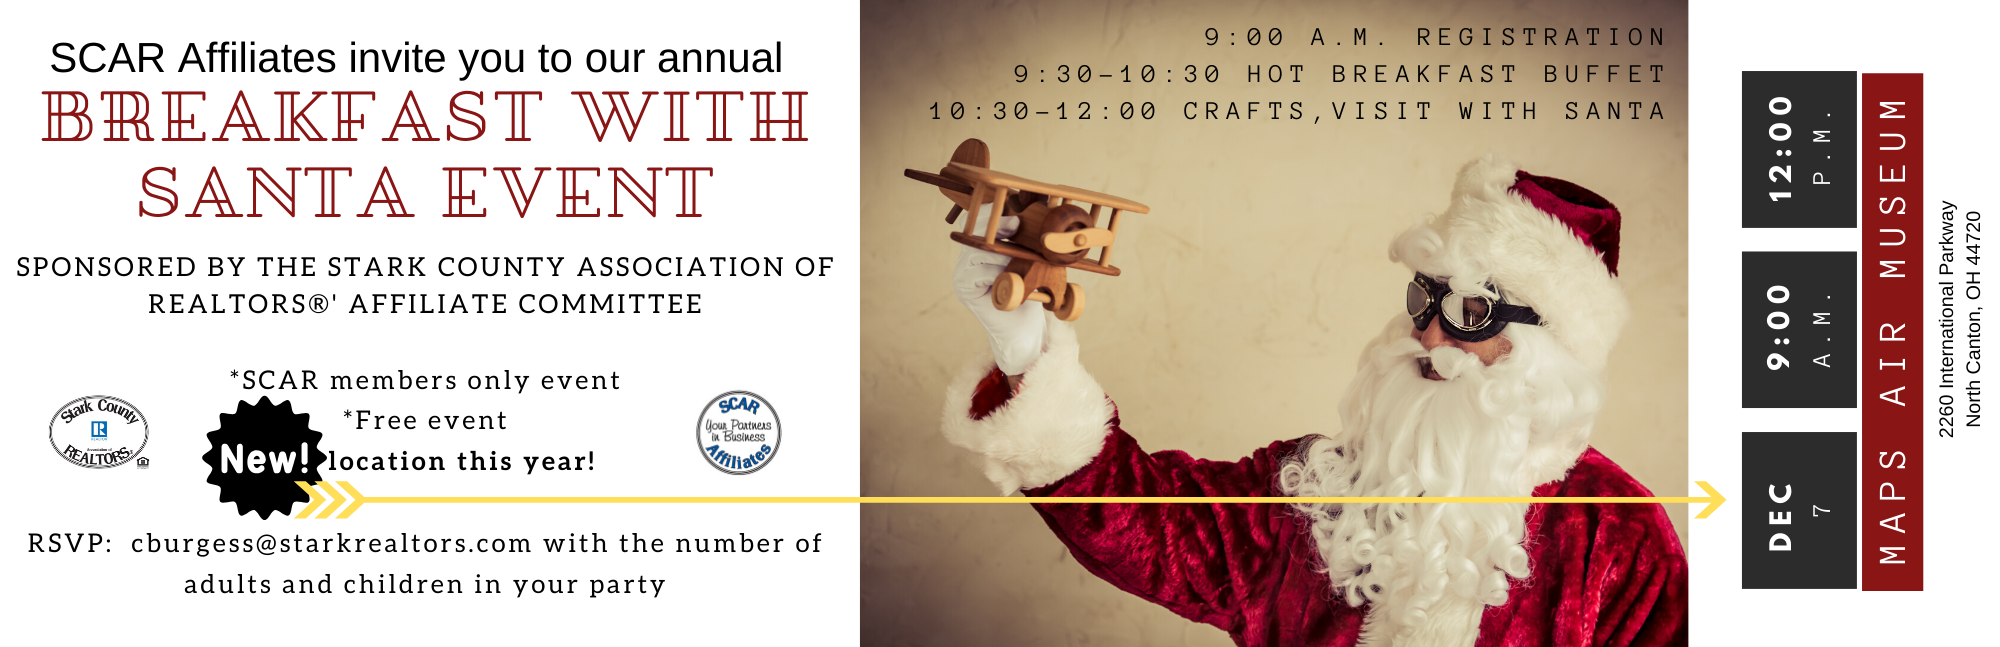 Annual Breakfast with Santa Event